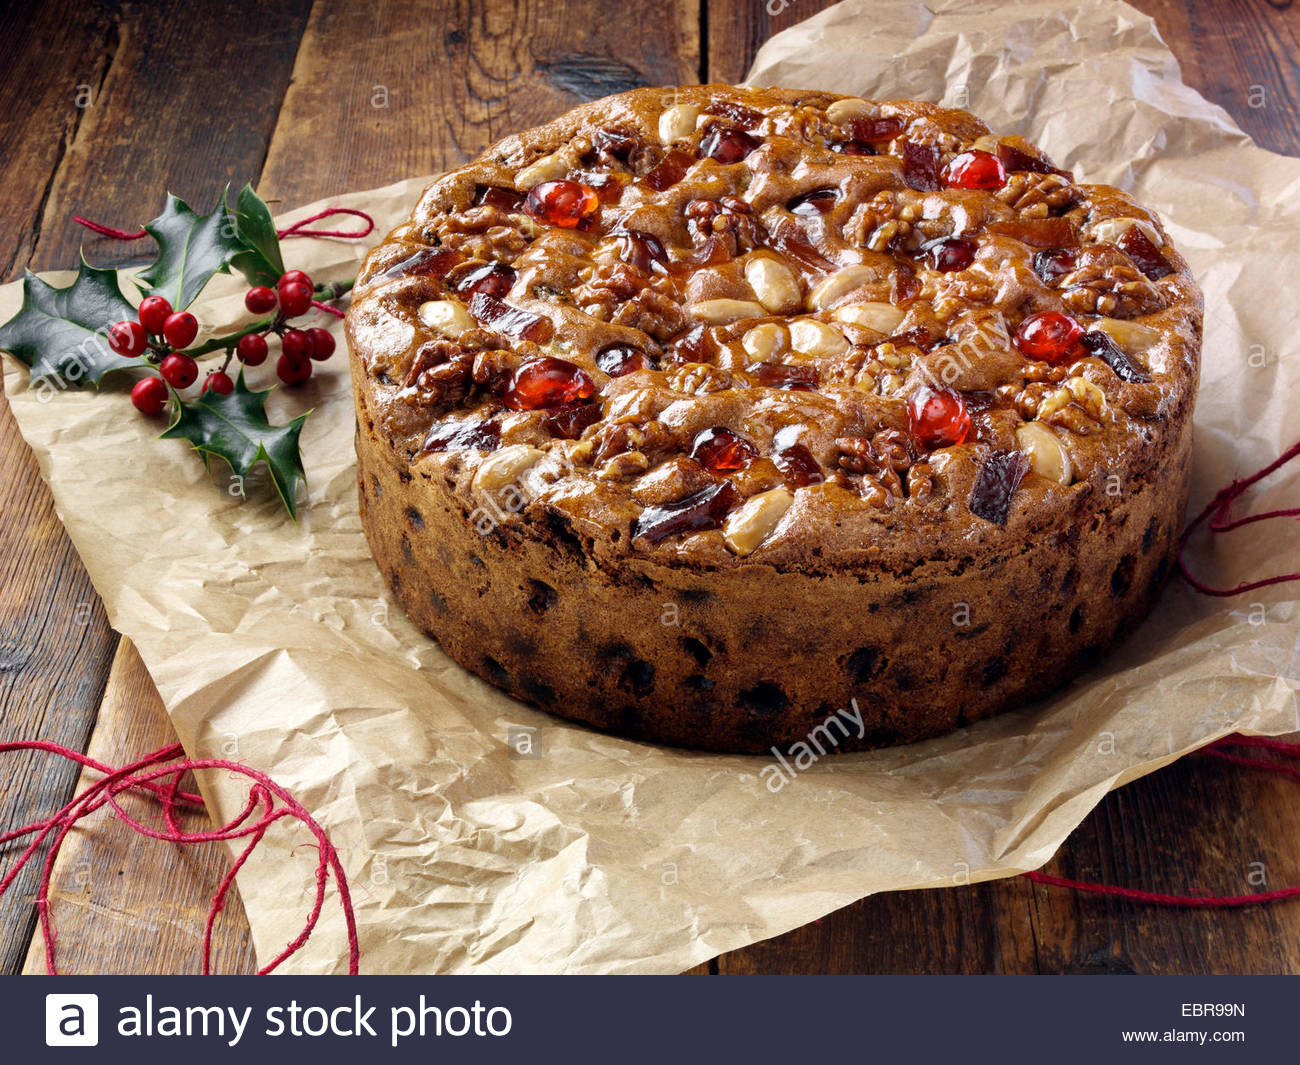 Mary Berry Christmas Cakes  Mary Berry Genoa fruit cake for Christmas Stock